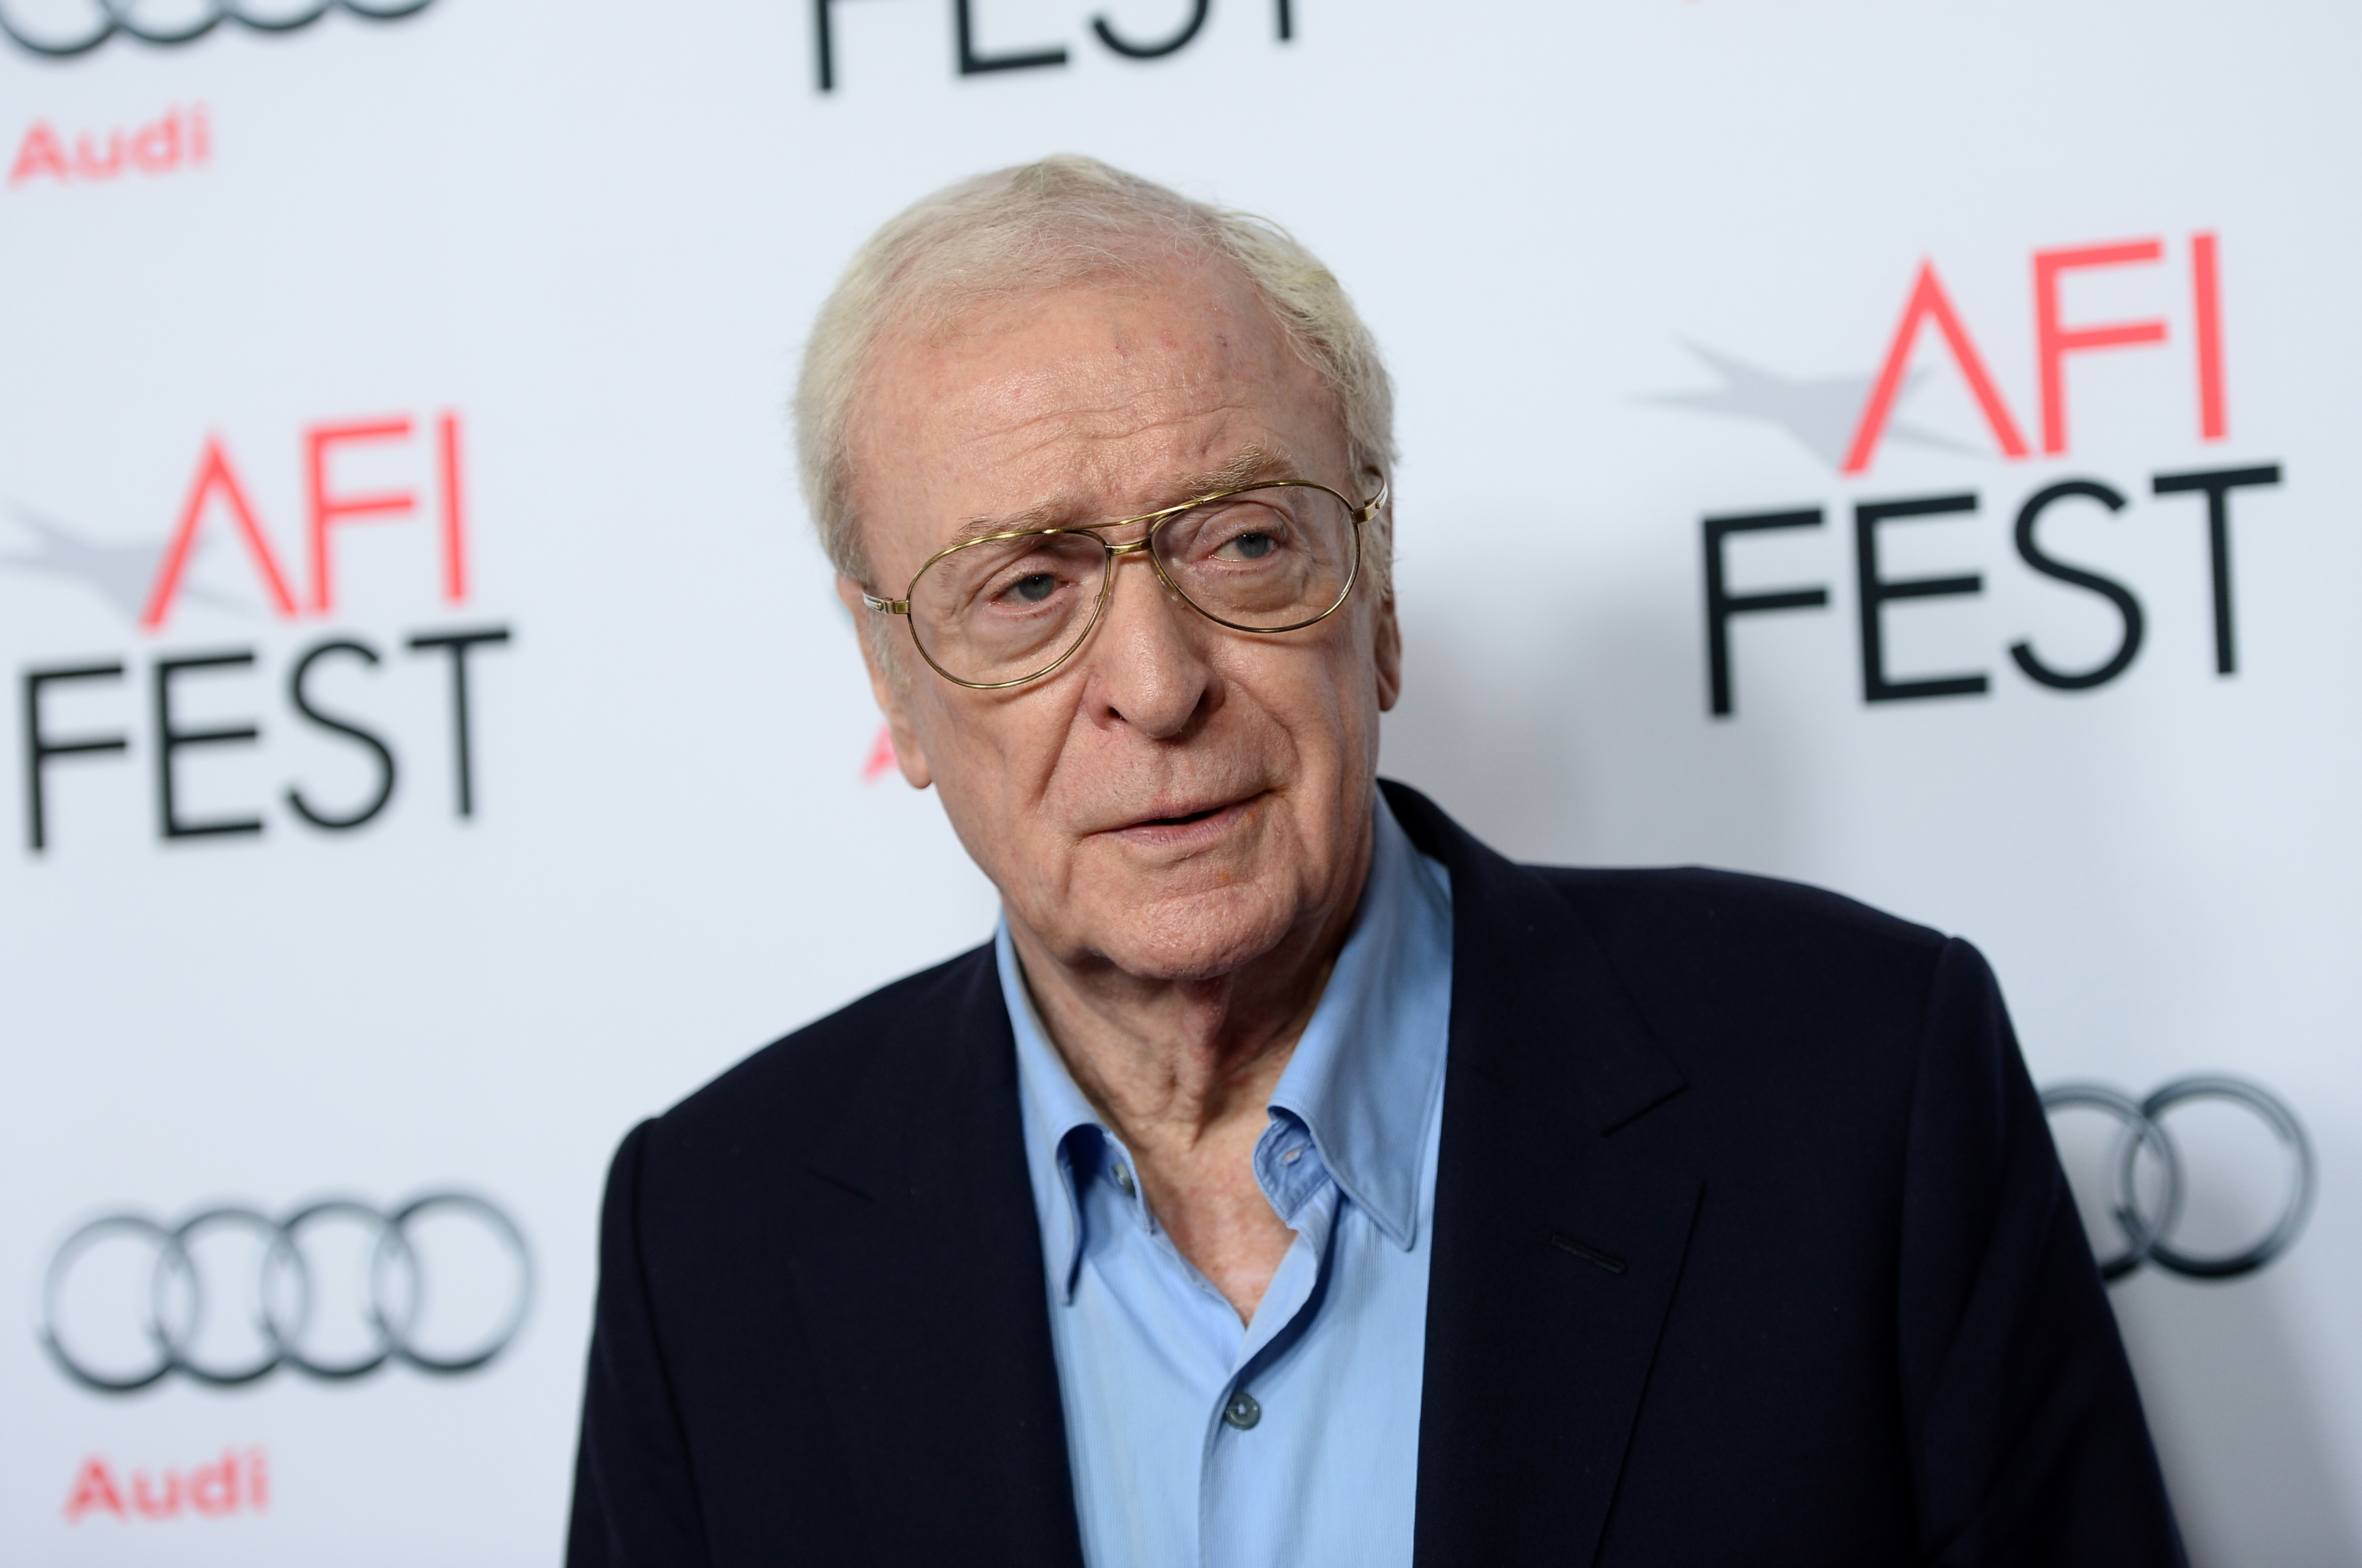 ISIS has forced Sir Michael Caine to change his name